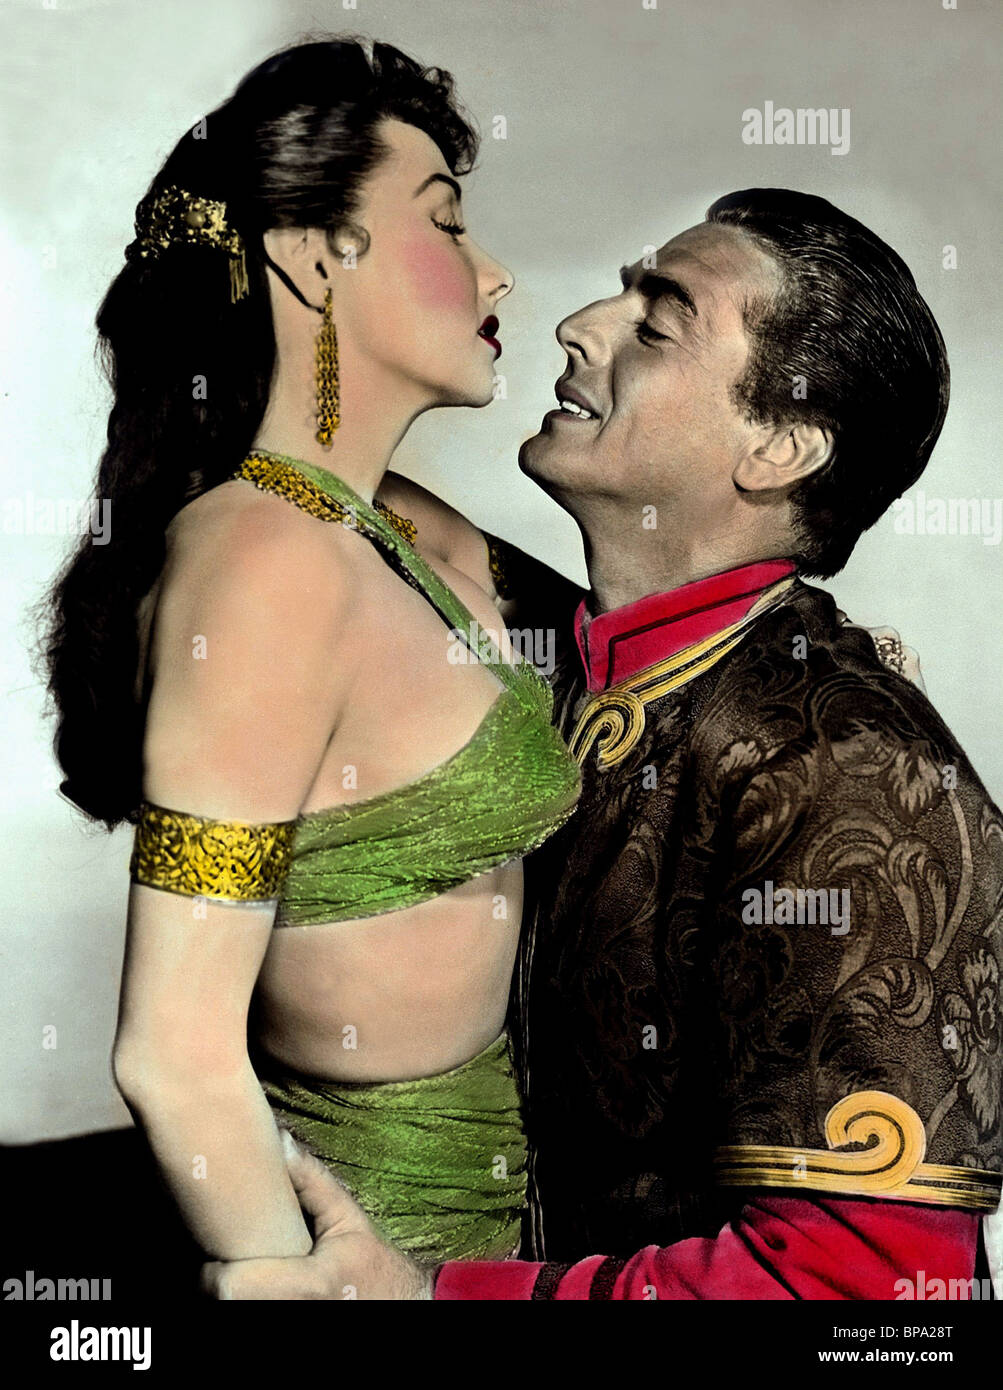 MARI BLANCHARD, VICTOR MATURE, THE VEILS OF BAGDAD, 1953 Stock Photo